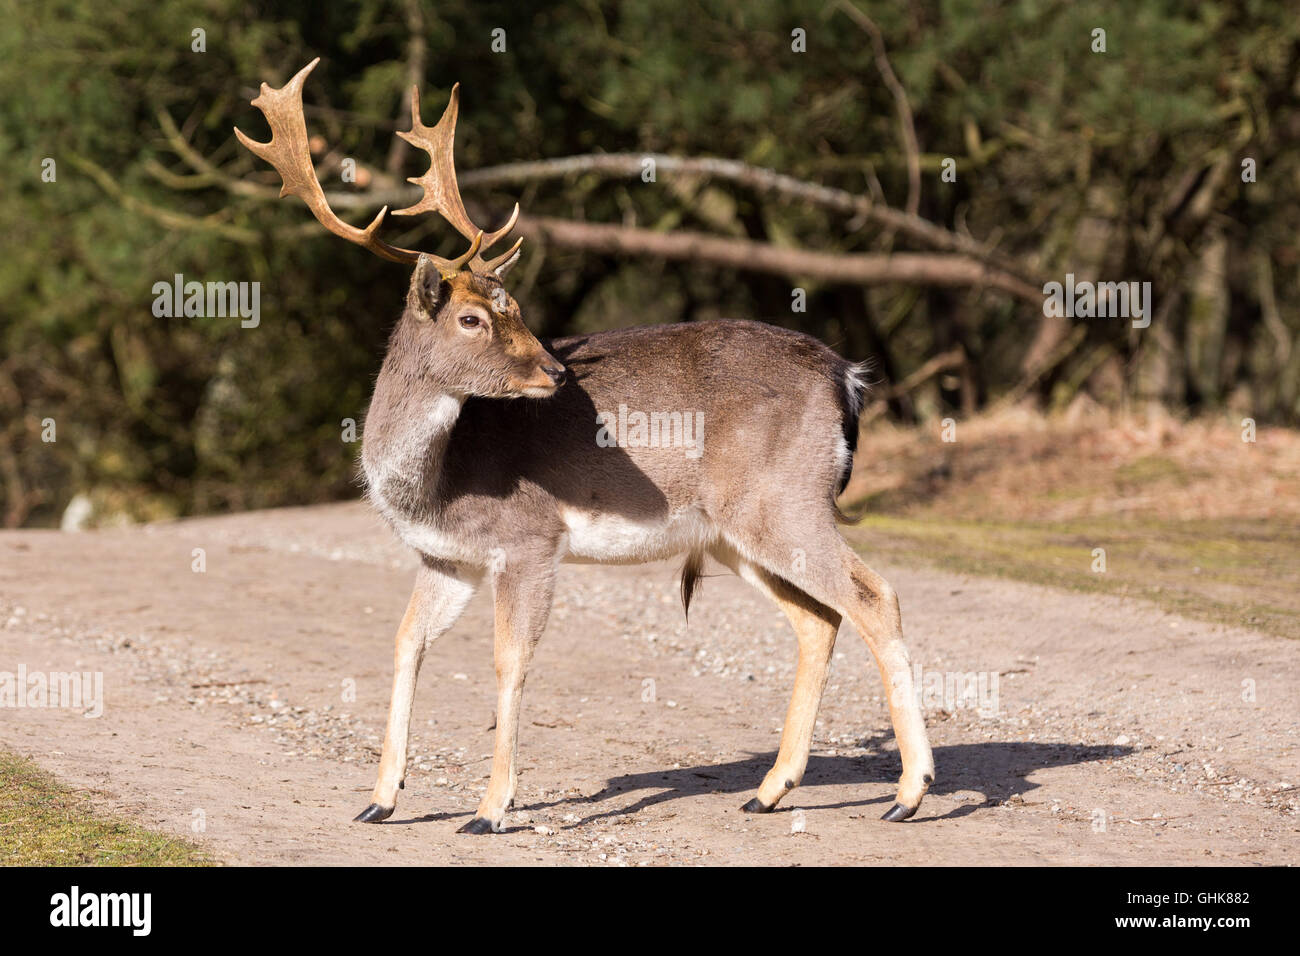 Whitetail deer with large rack in spring. - Stock Image